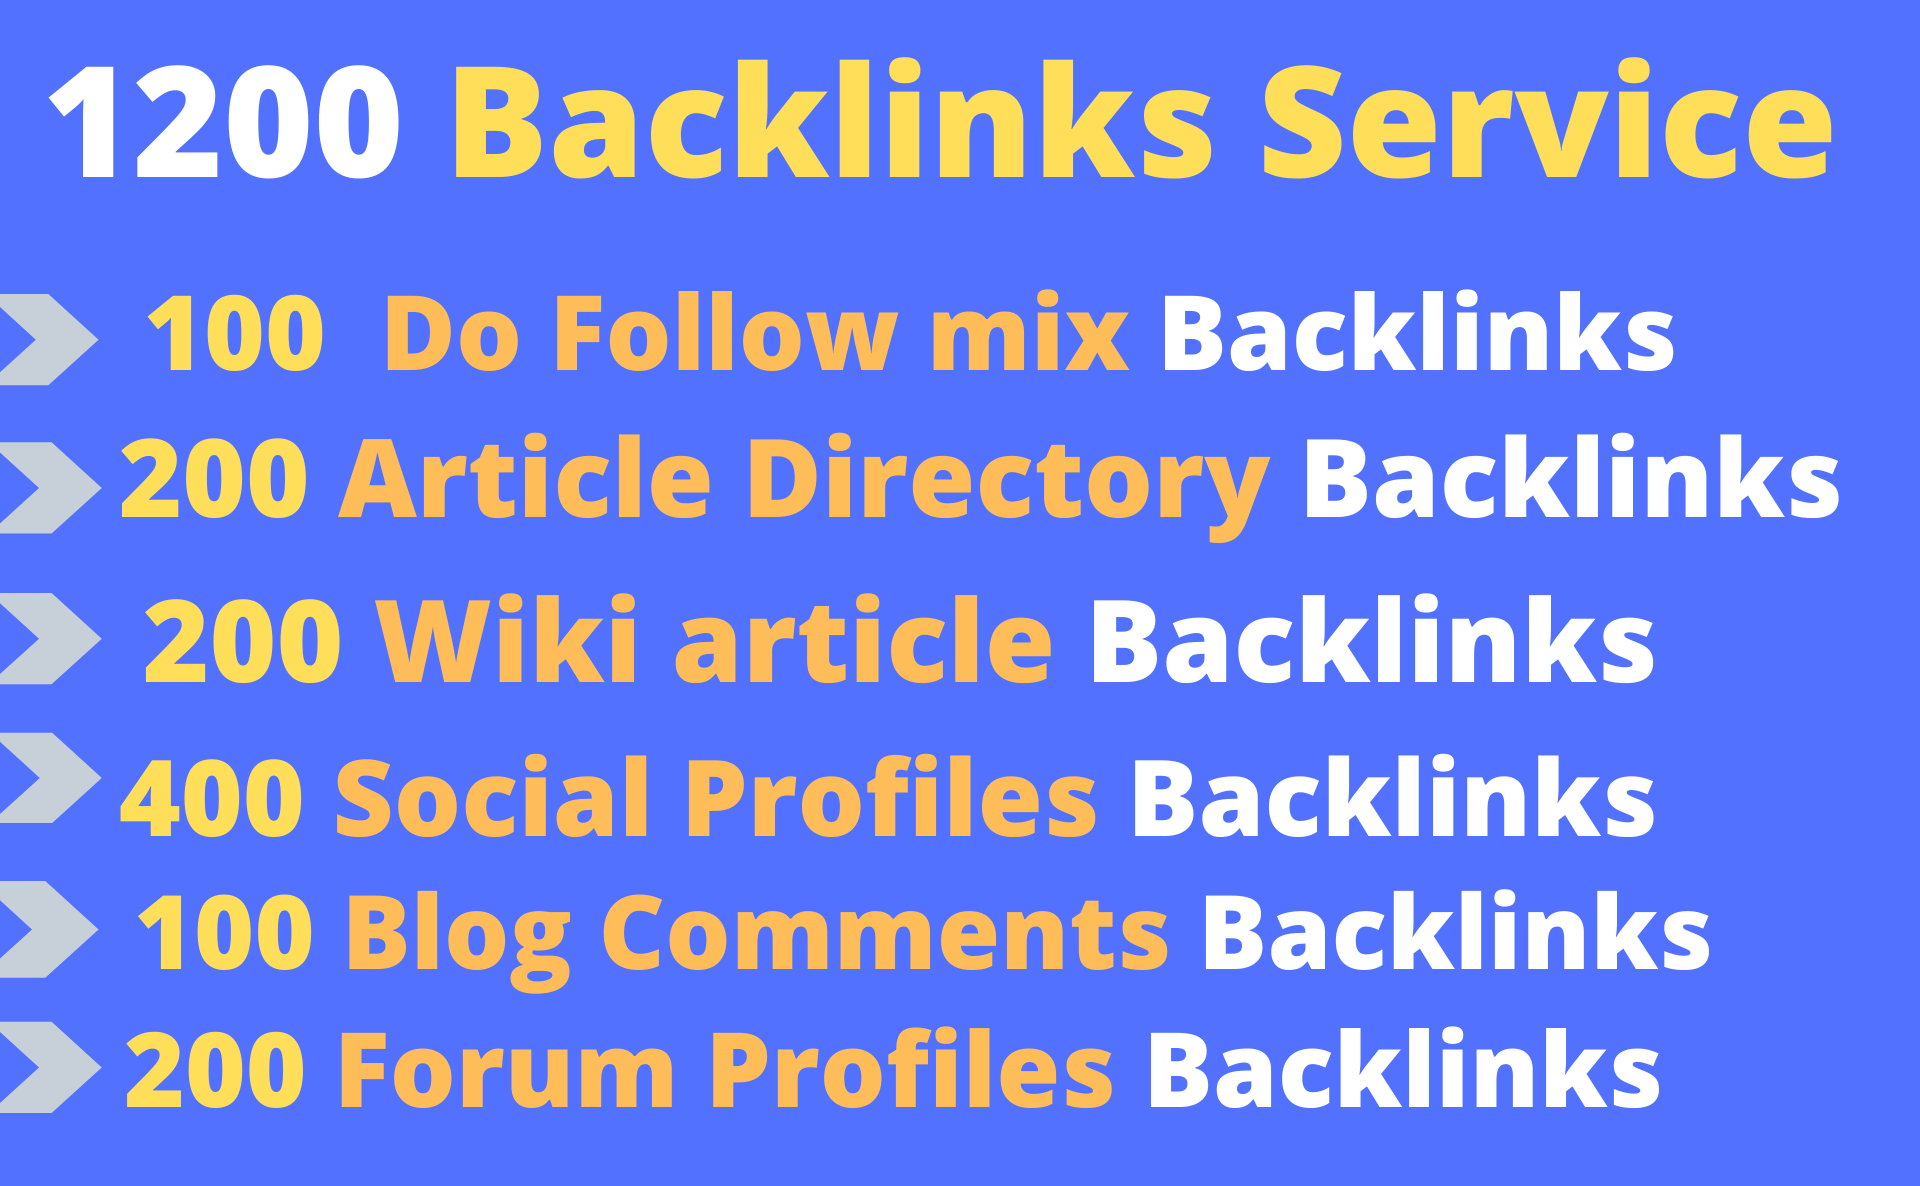 Provide 1200 backlinks including 200 Article directory, 200 Wiki article, 400 Social profiles backlin